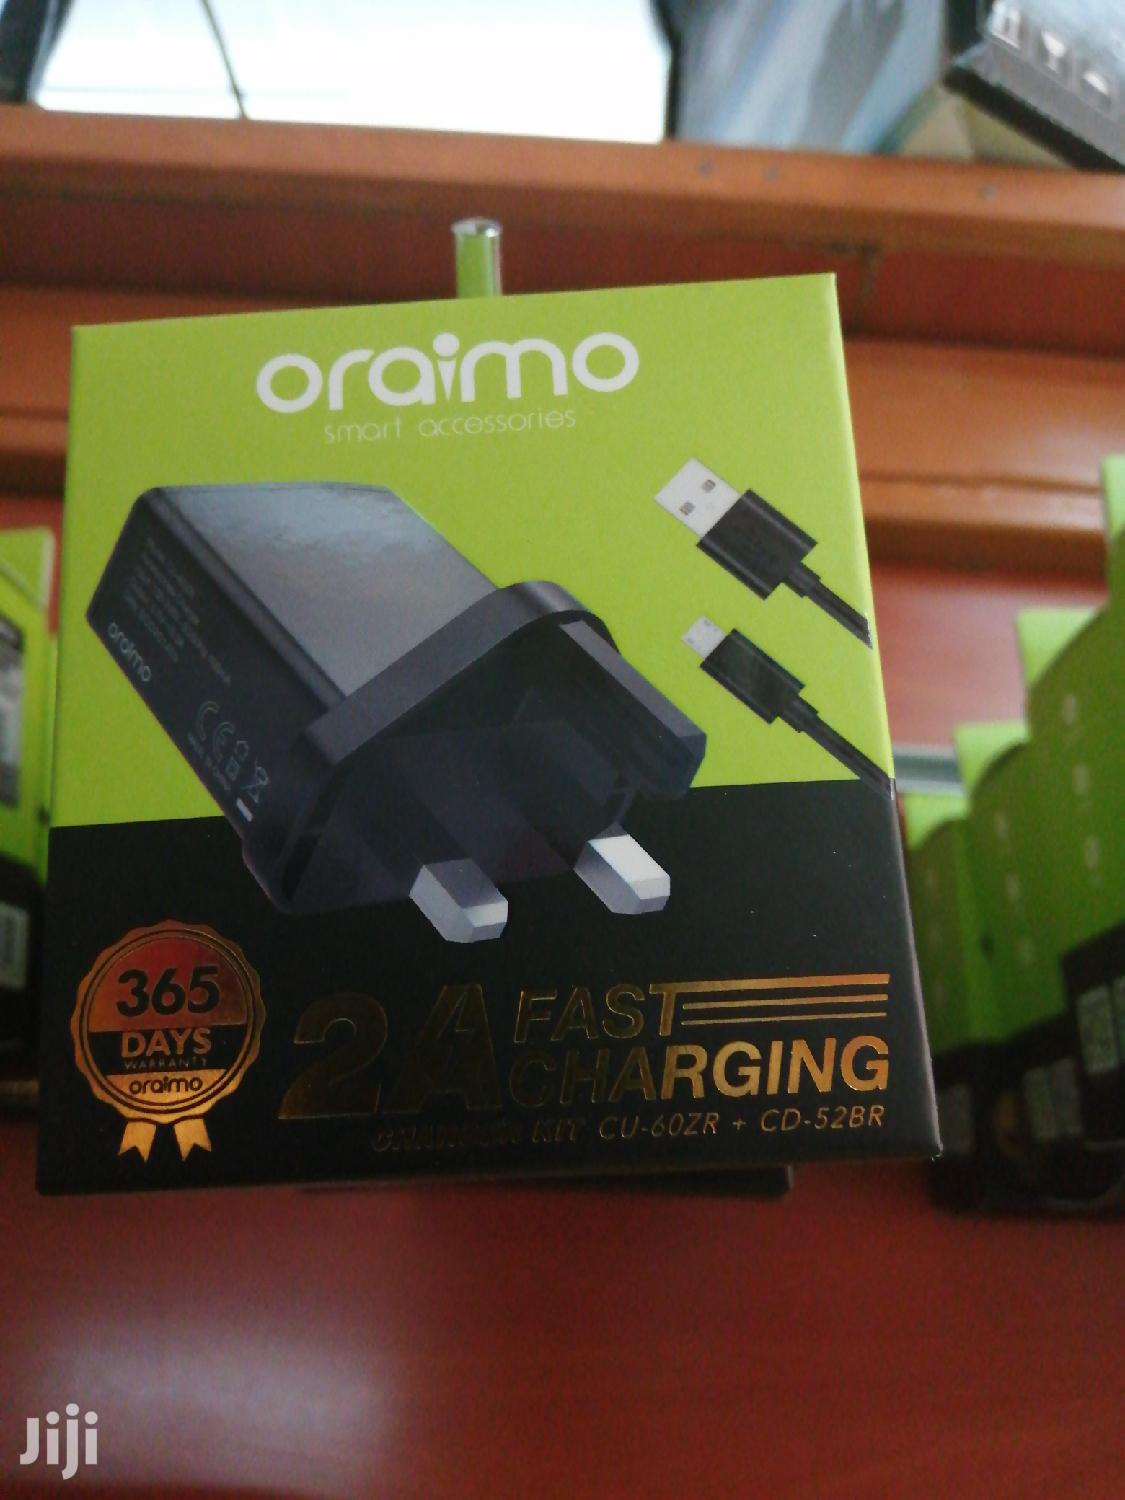 Oraimo Charger 3pin | Accessories for Mobile Phones & Tablets for sale in Nairobi Central, Nairobi, Kenya